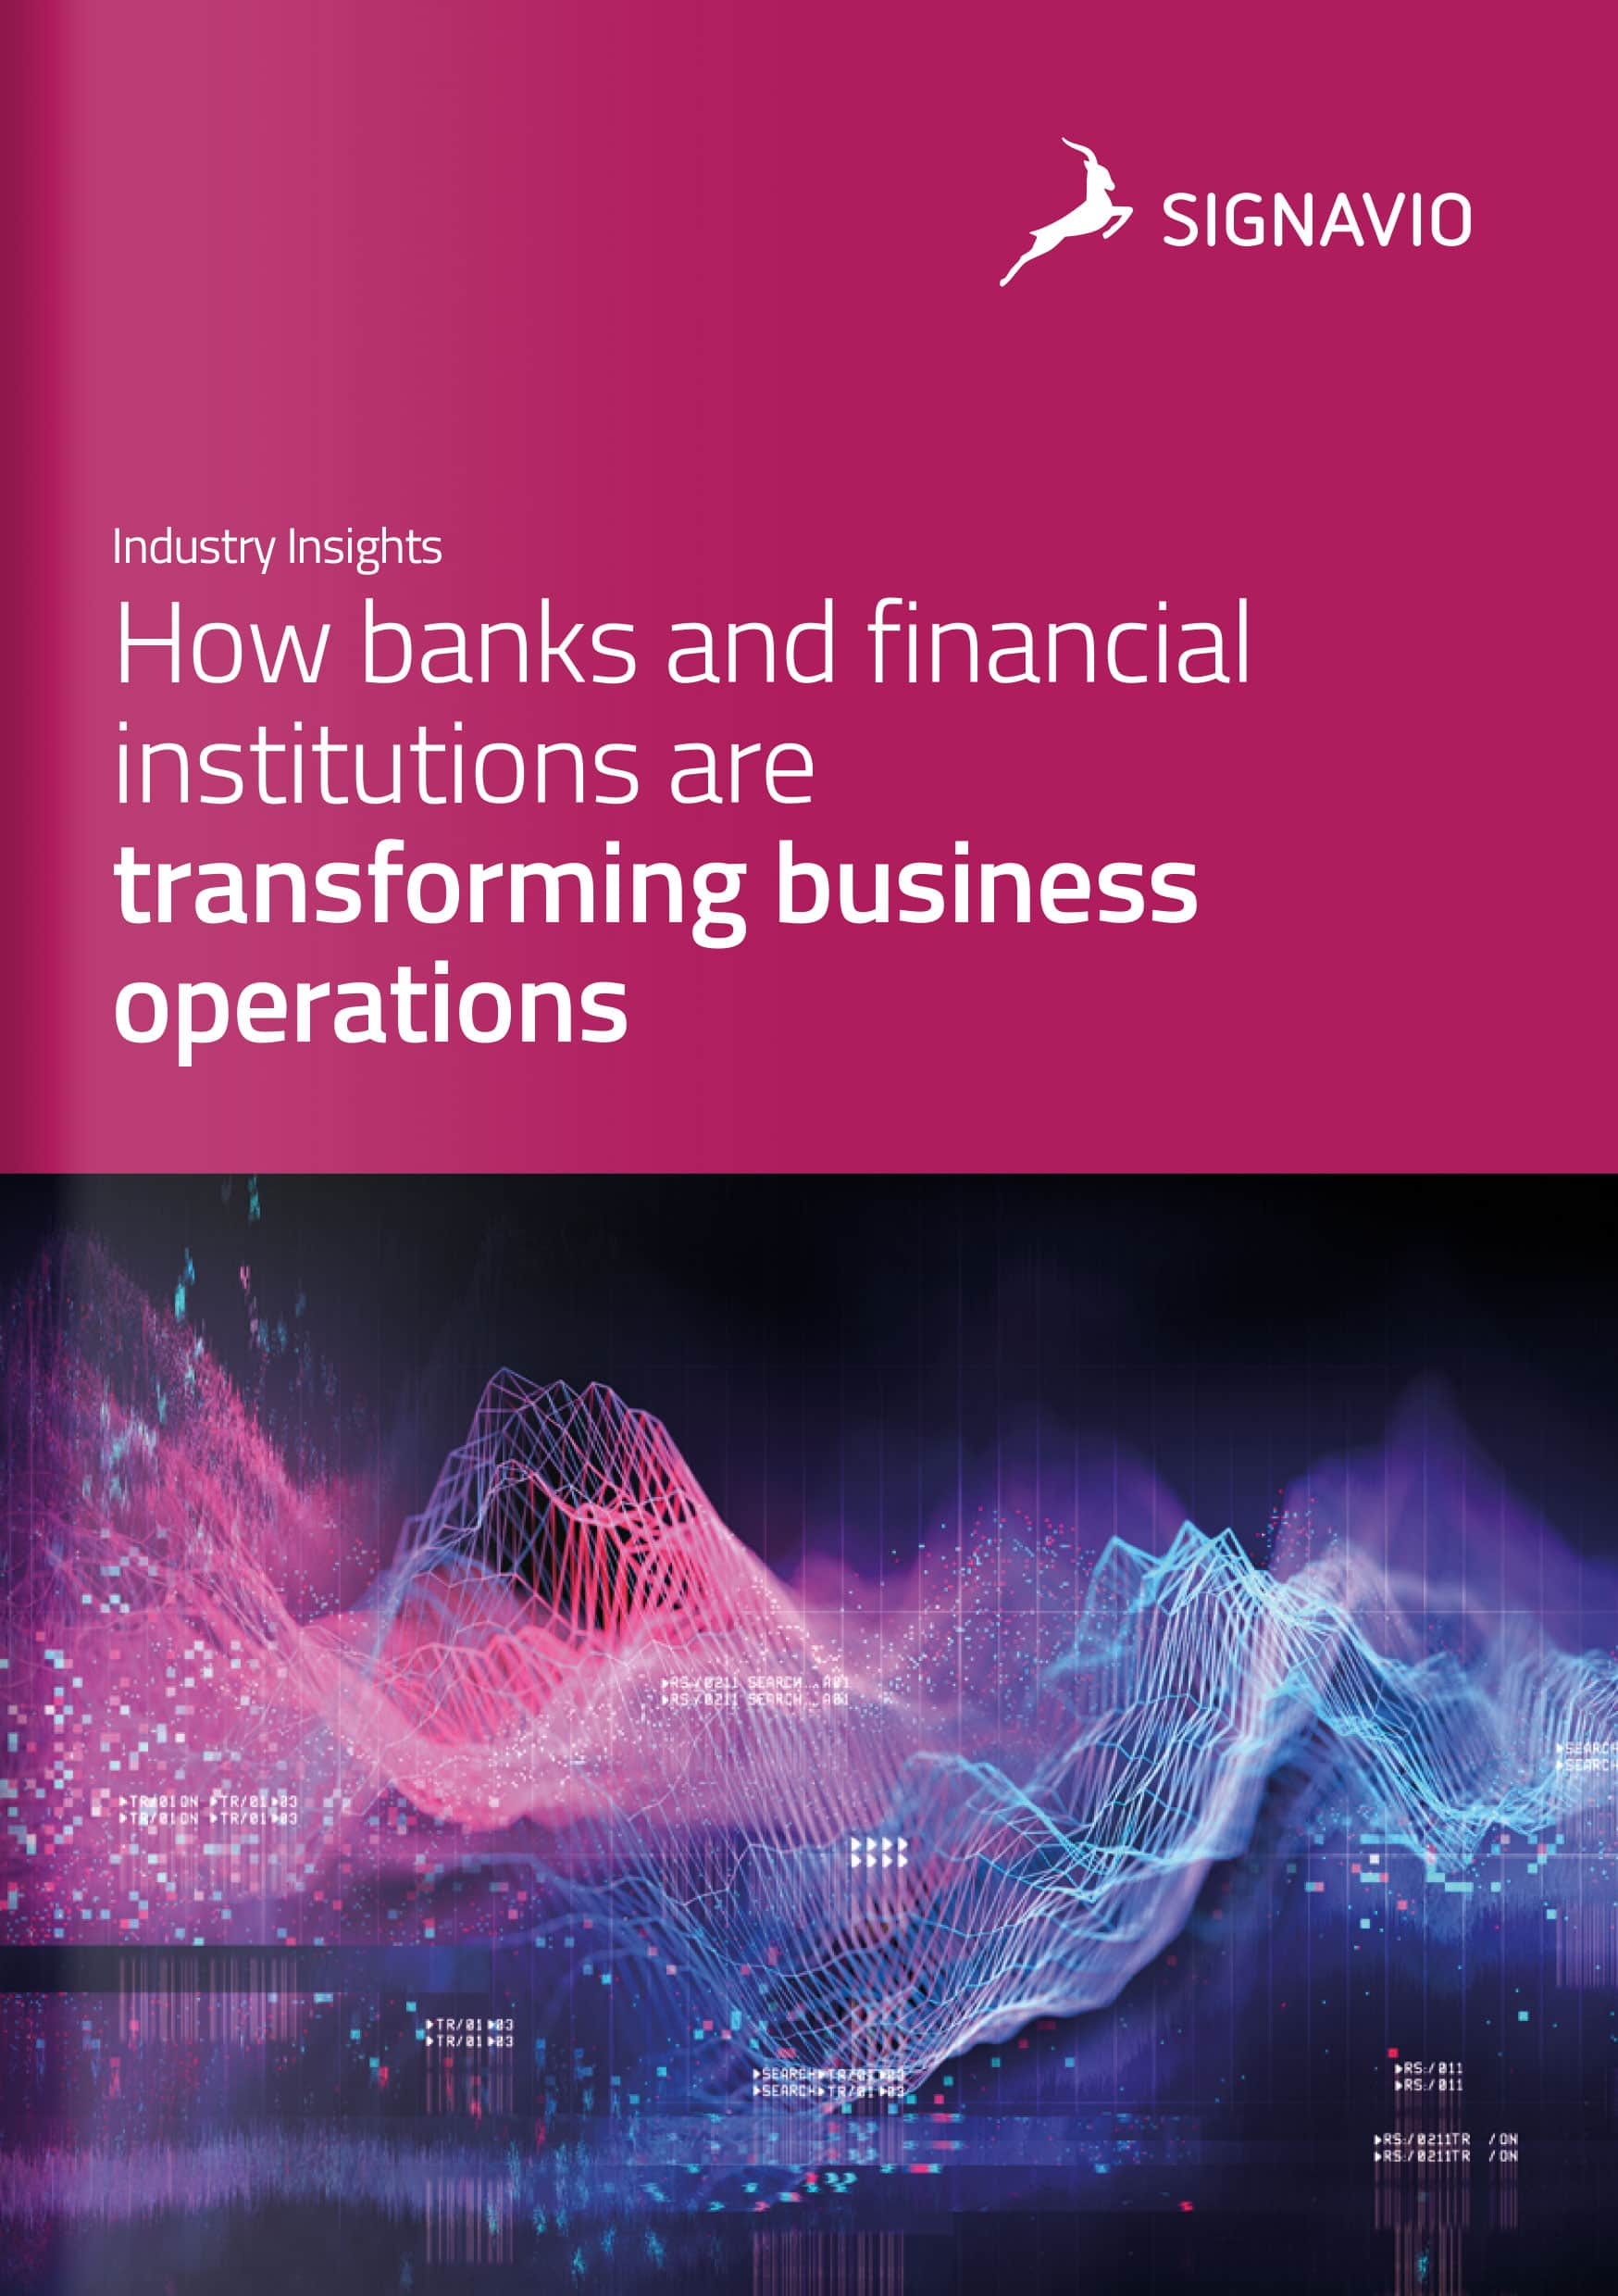 how banks and financial institutions are transforming business operations cover image